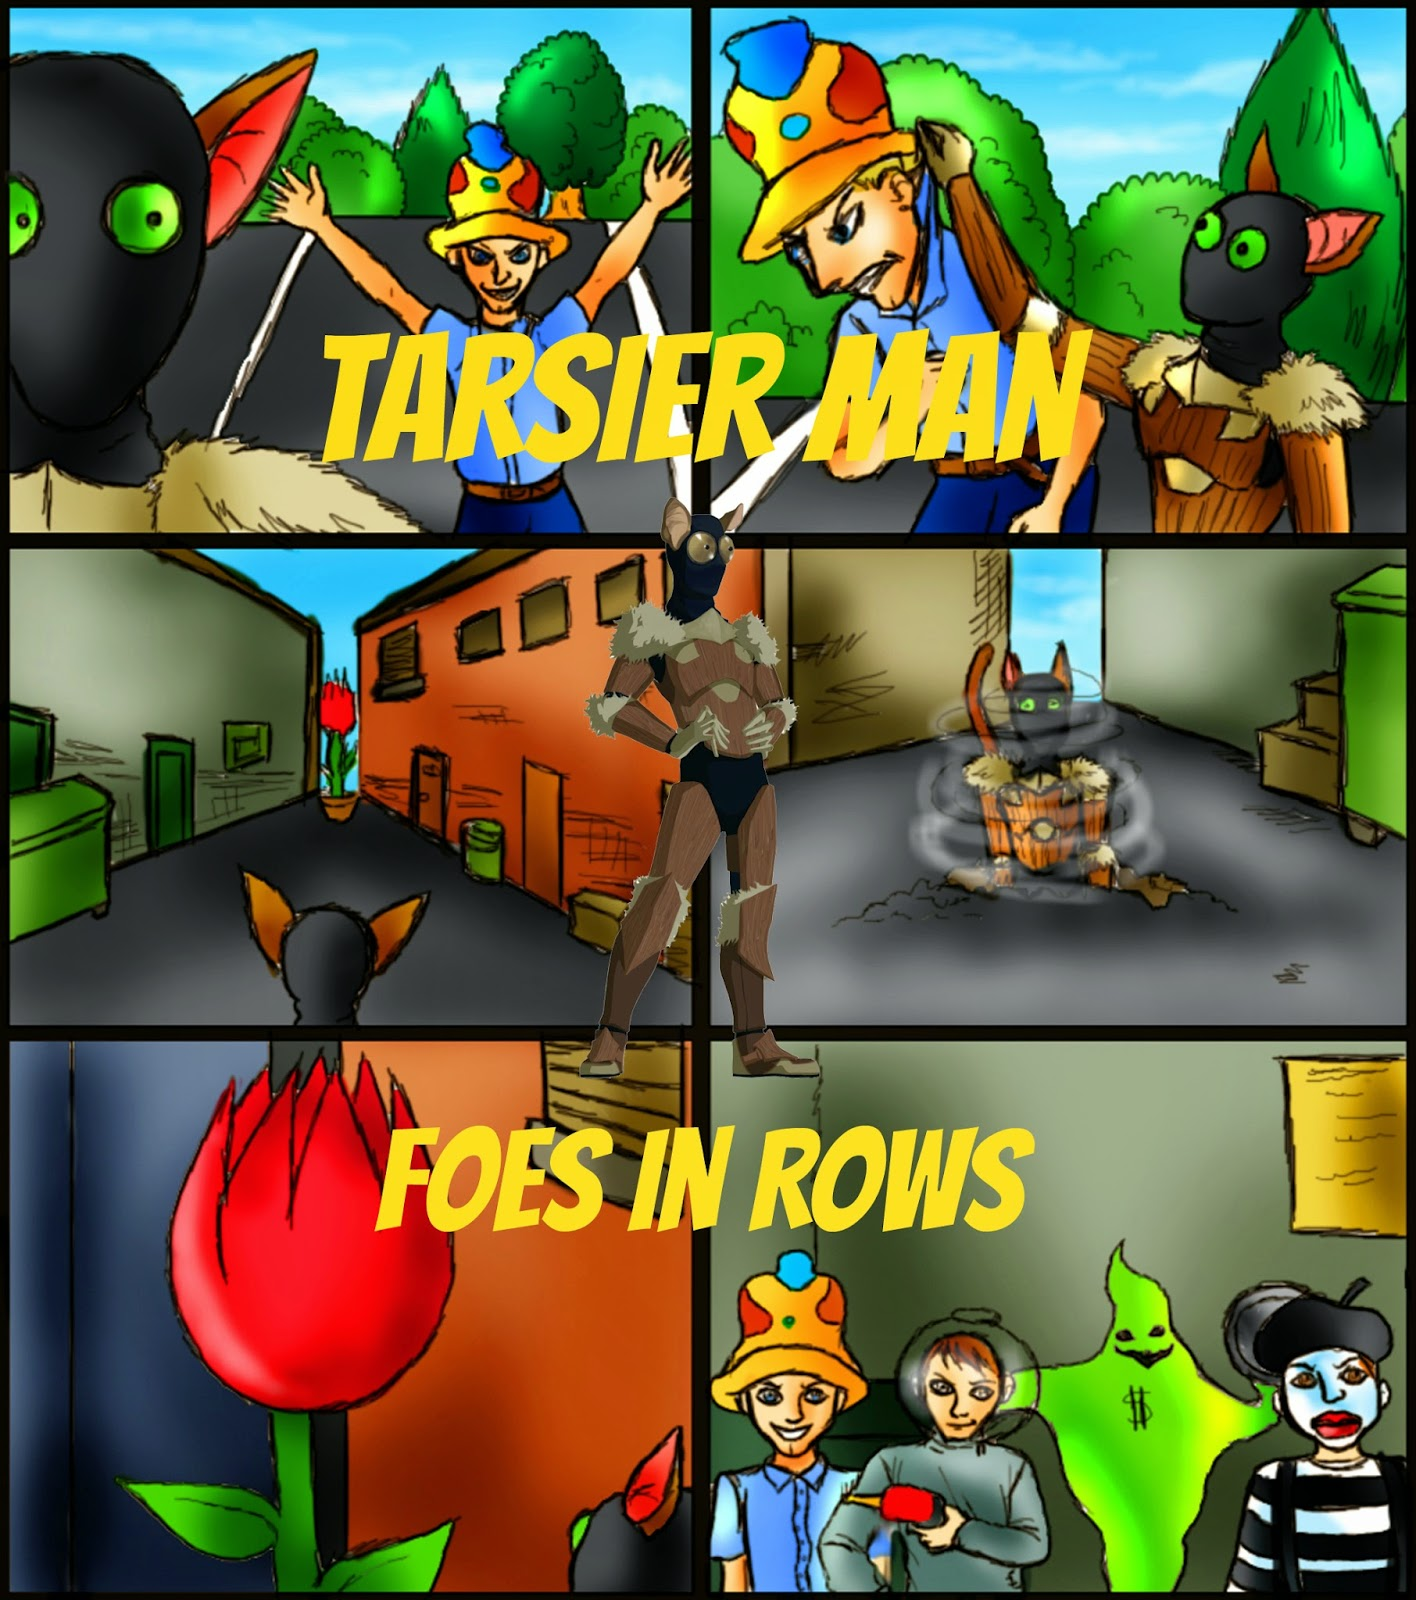 http://www.amazon.com/Tarsier-Man-Foes-Pat-Hatt-ebook/dp/B00UG8UCKY